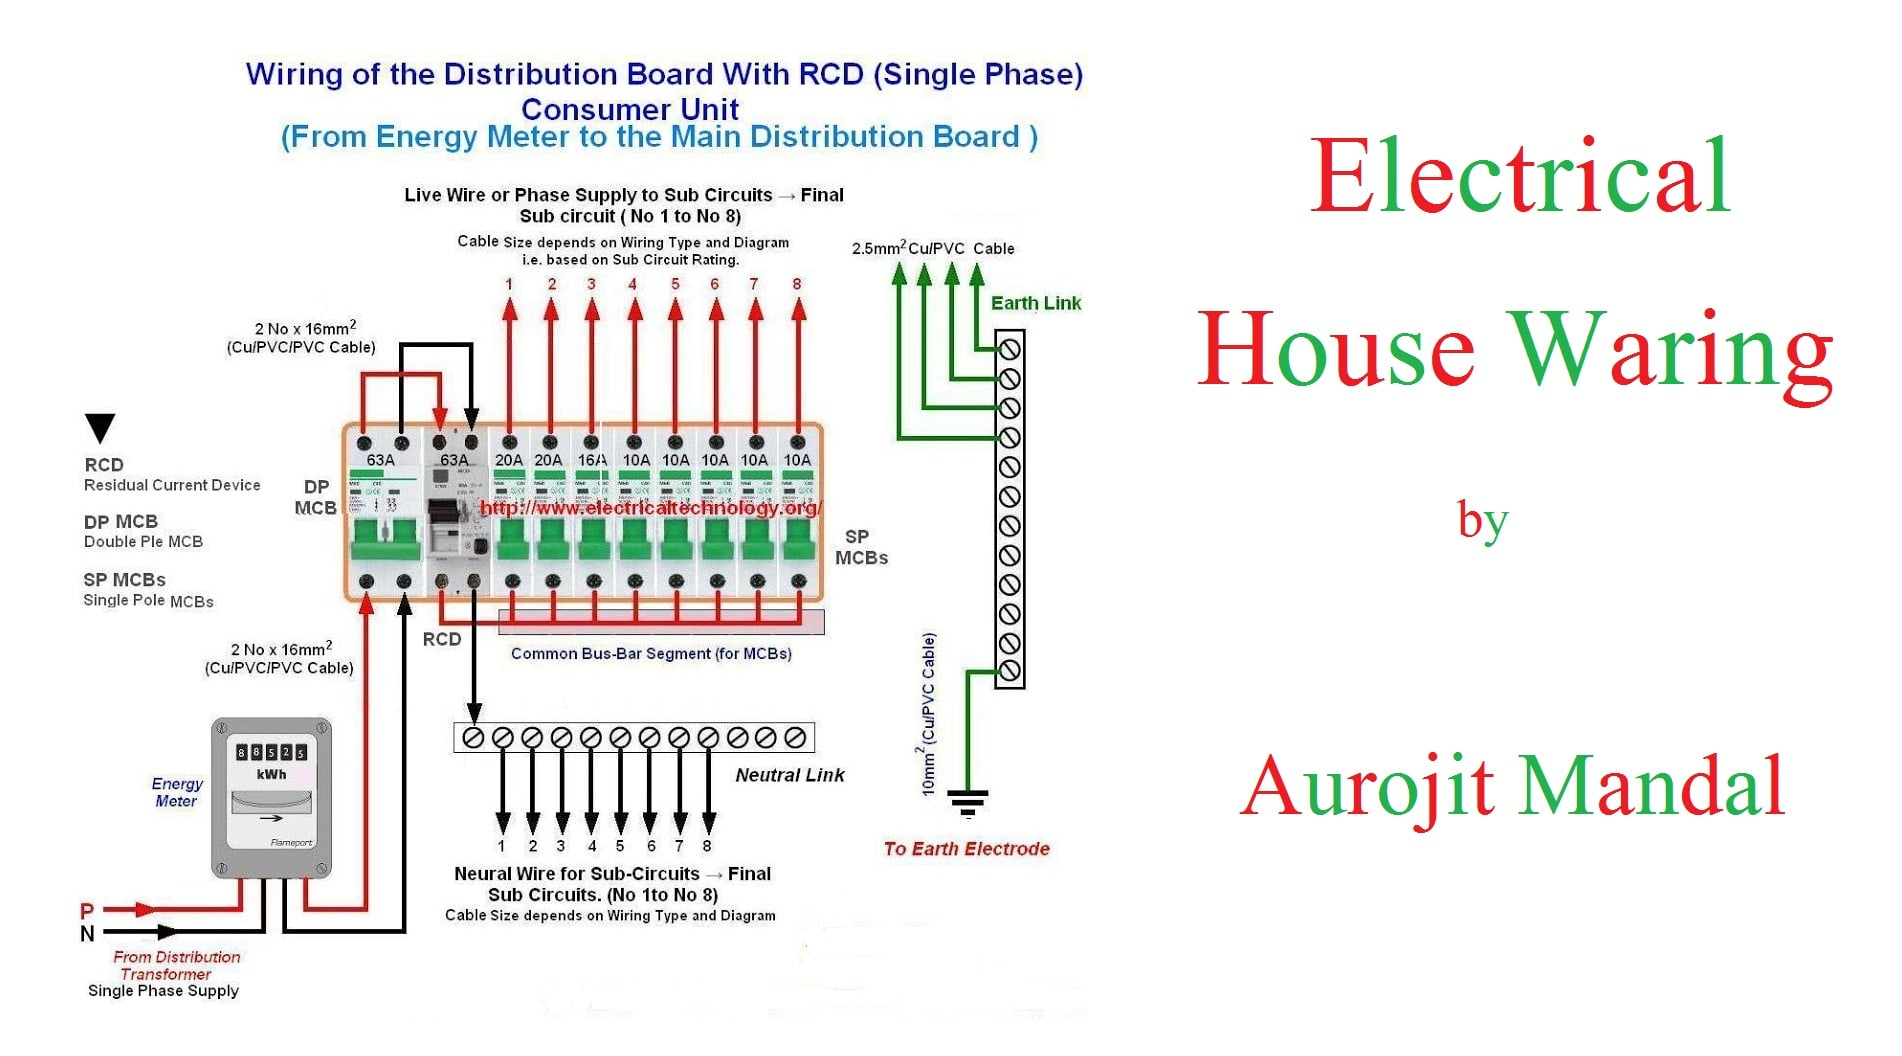 aurojit_mandal : I will do Electrical House Wiring in Autocad for $50 on residential electrical schematic diagrams, residential electrical grounding system, residential electrical panels, circuit breaker, national electrical code, electrical conduit, residential electrical busbar, residential electrical fans, distribution board, residential generators wiring, residential electrical wire connectors, residential electrical connections, residential heat wiring, residential controls wiring, residential electrical wire gauge, three-phase electric power, residential electrical enclosure, residential electrical trim, ground and neutral, earthing system, power cable, residential electrician, electrical wiring in north america, residential electrical checklist, ac power plugs and sockets, circuit diagram, junction box, ring circuit, residential electrical receptacle, residential electrical home runs, residential electrical testing, electrical system design, light switch, residual-current device, residential electrical symbols, residential kitchen wiring,